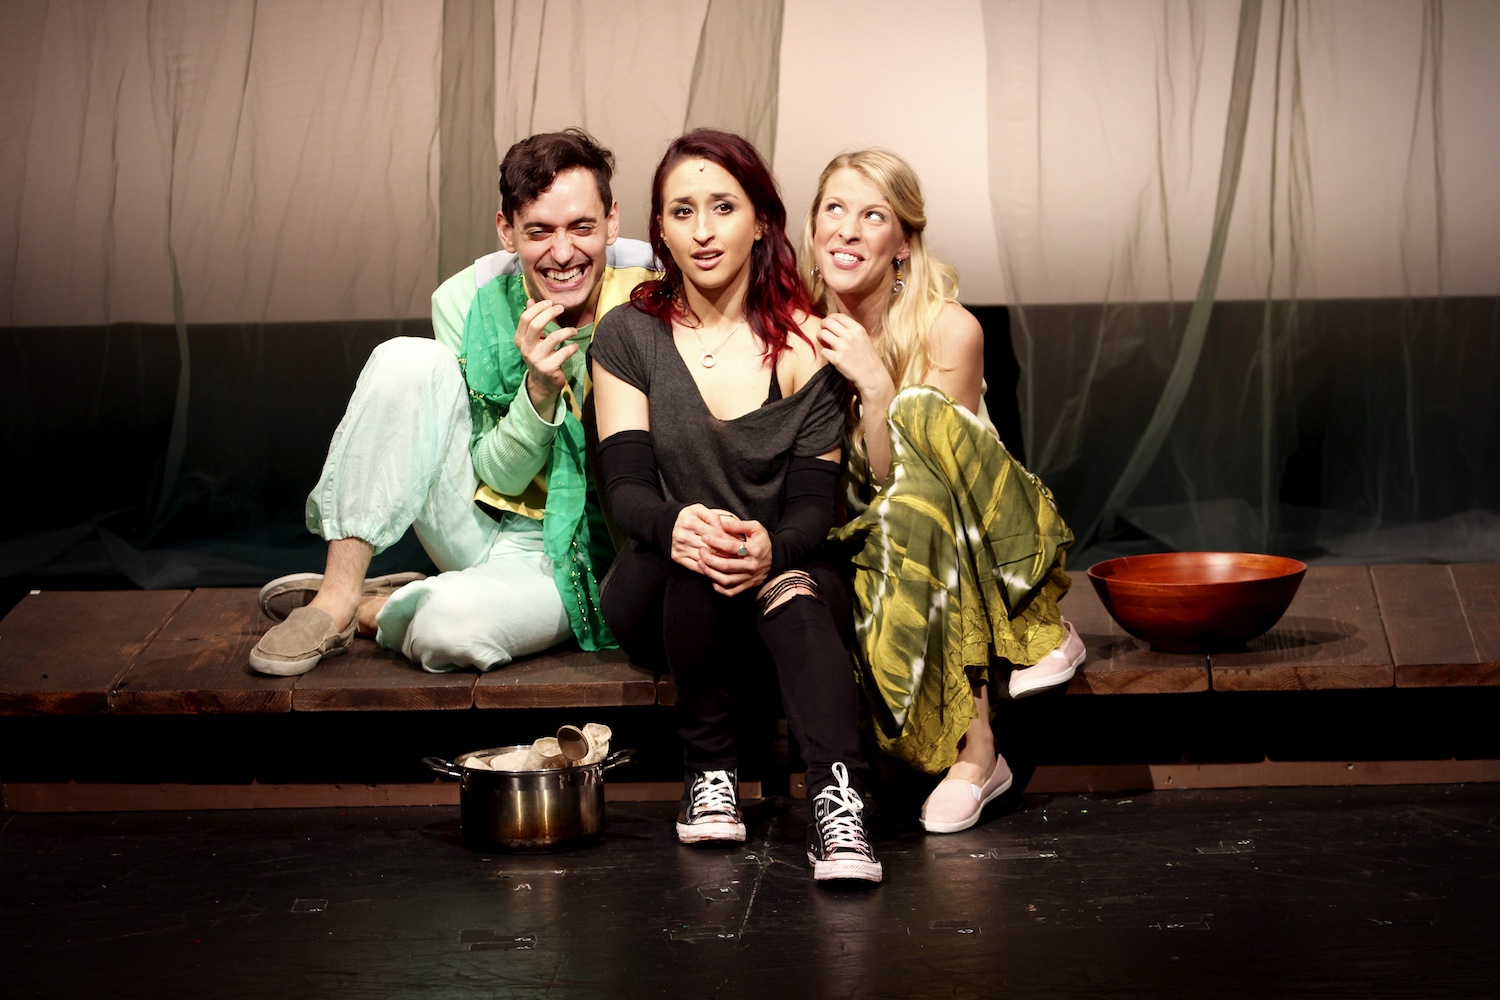 Jacob Hoffman (Derekh), Samia Mounts (Raina), Cali Elizabeth Moore (Harmony). New York Musical Festival. Photo: Karen Shih.